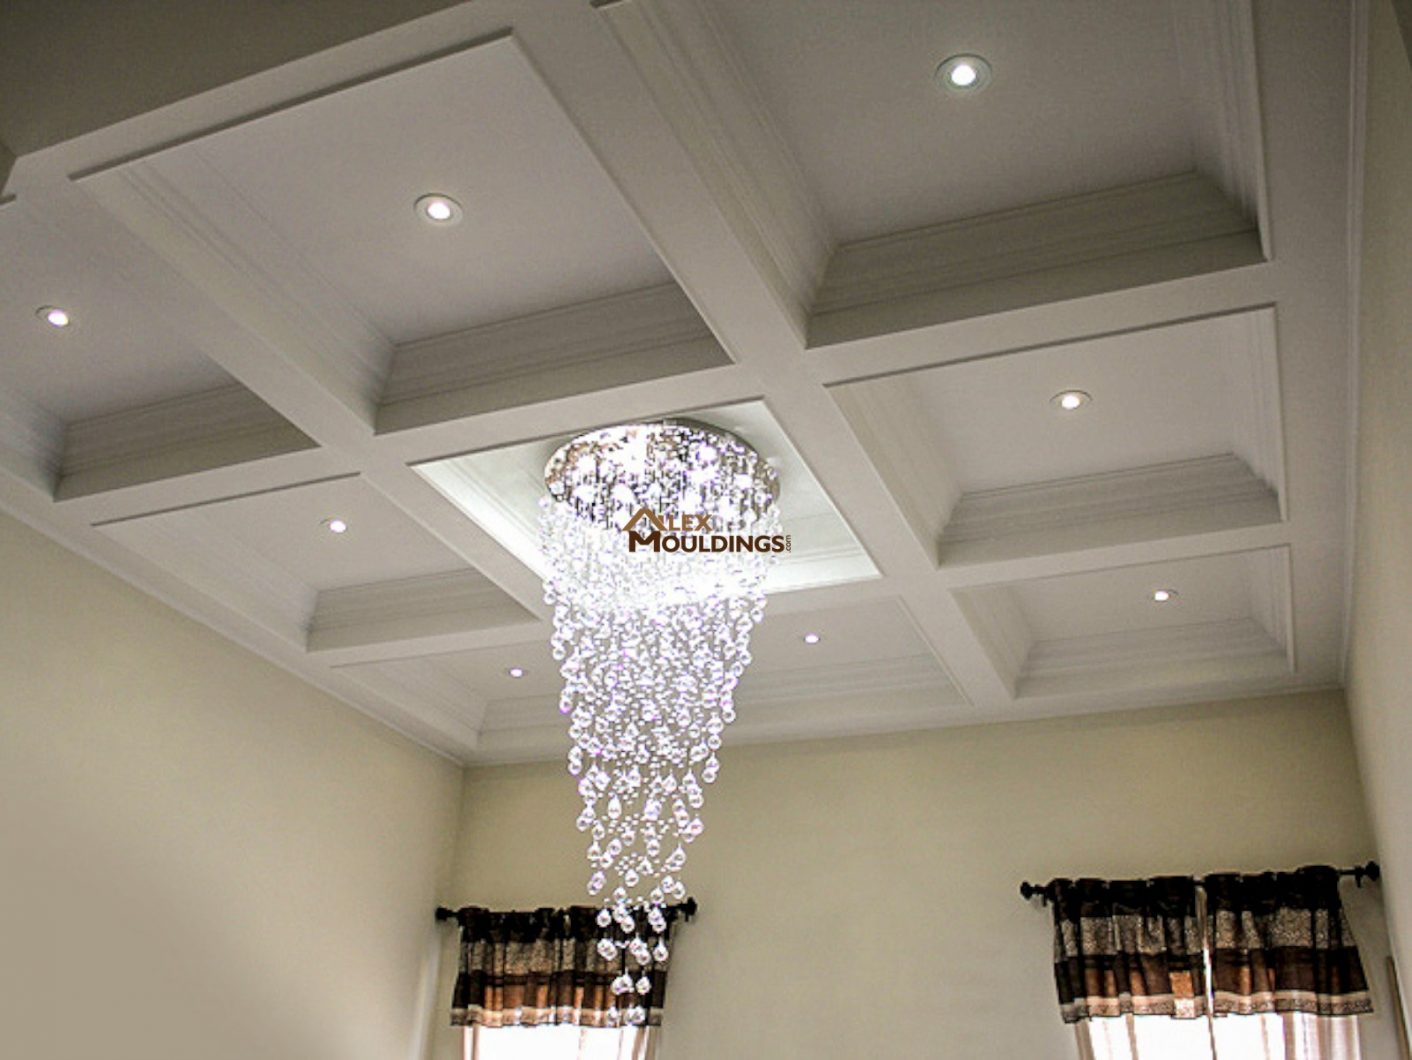 17 special coffered waffle ceilings making house look so much richer - Entrancing home interior design with various modern coffered ceiling ...